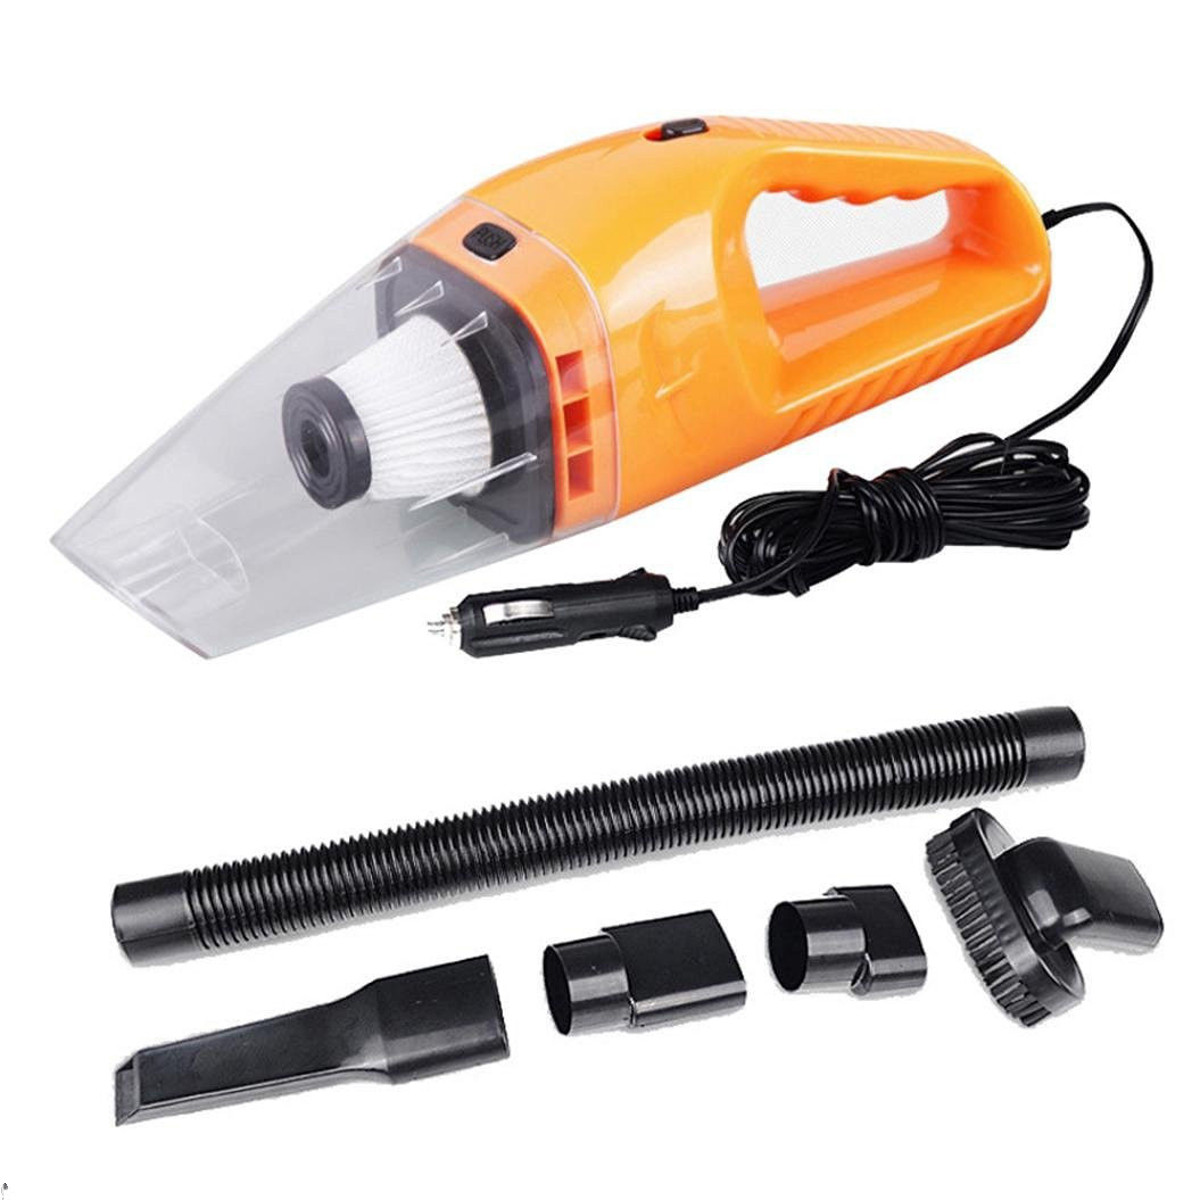 12v 120w mini handheld vacuum cleaner useful in car portable wet dry car home. Black Bedroom Furniture Sets. Home Design Ideas